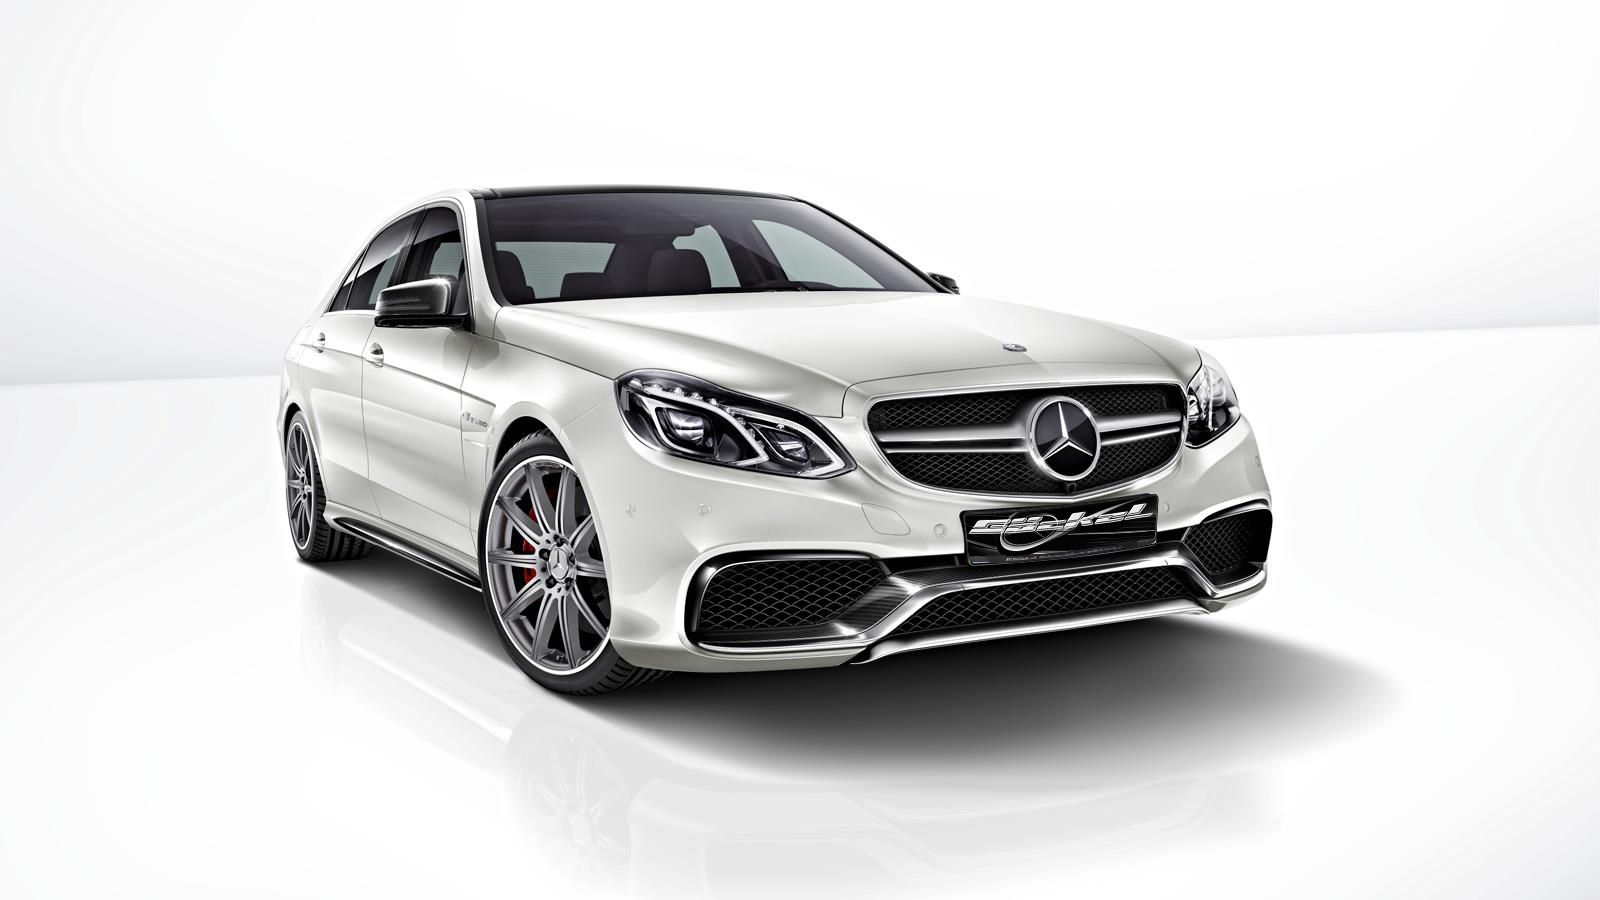 AMG63 Facelift Styling E-Klasse W212 goeckel automobilveredelung